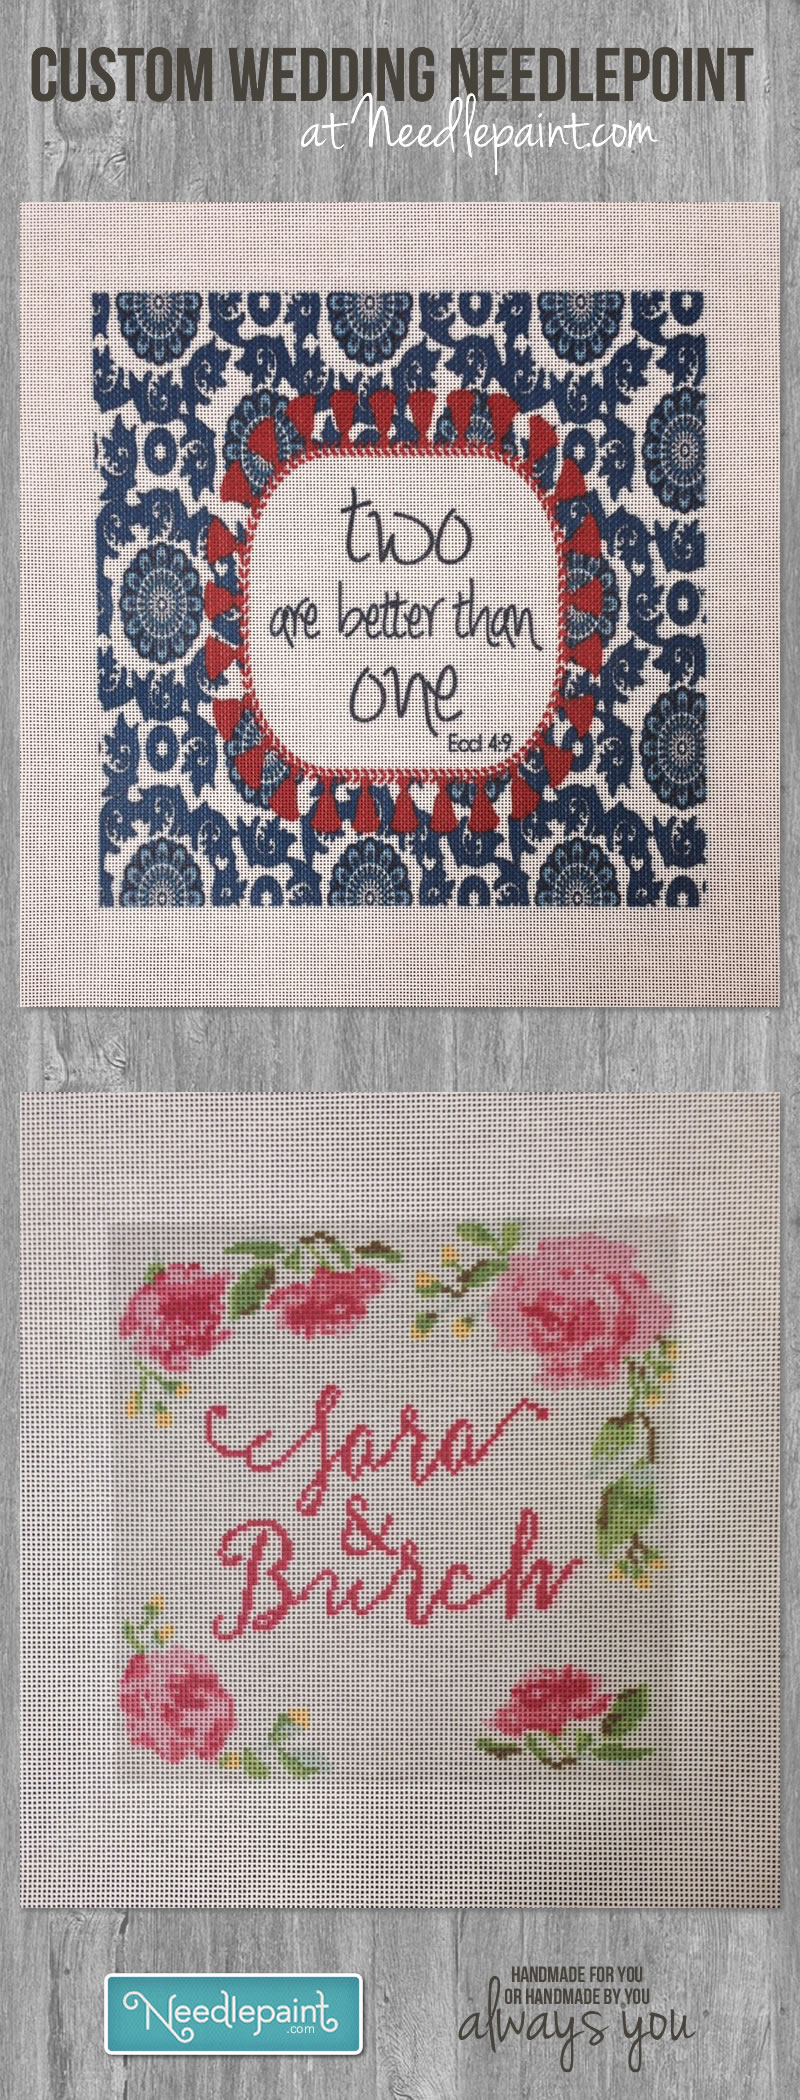 Wedding Needlepoint